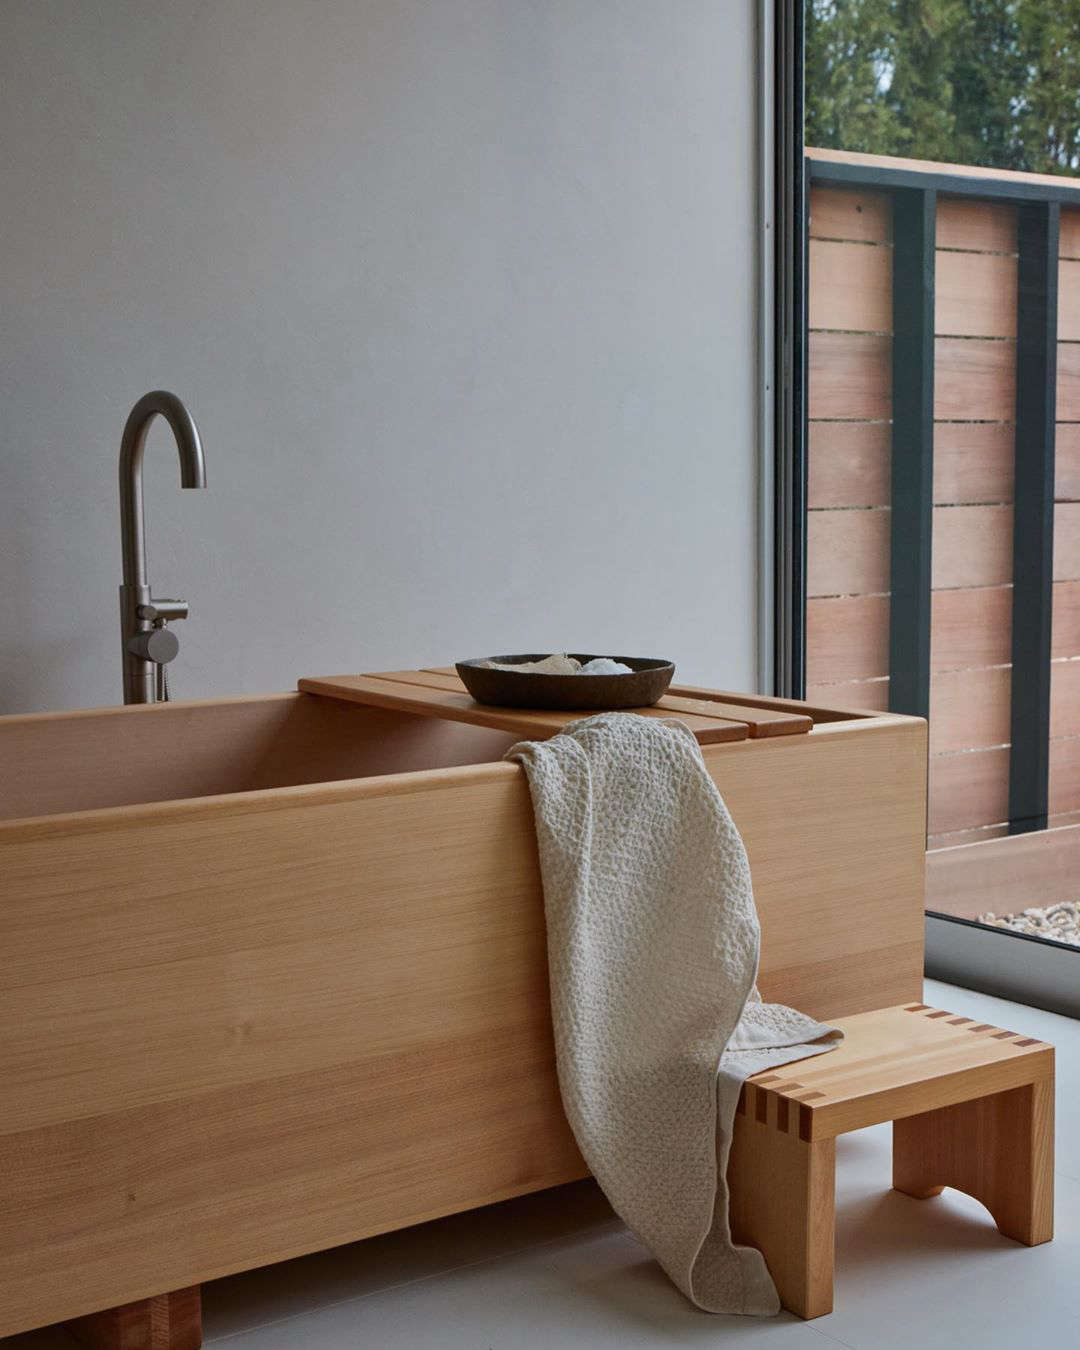 Each room has a private Hinoki wood soaking tub (for ideas, see  Favorites: Japanese-Style Bathtubs Around the World).